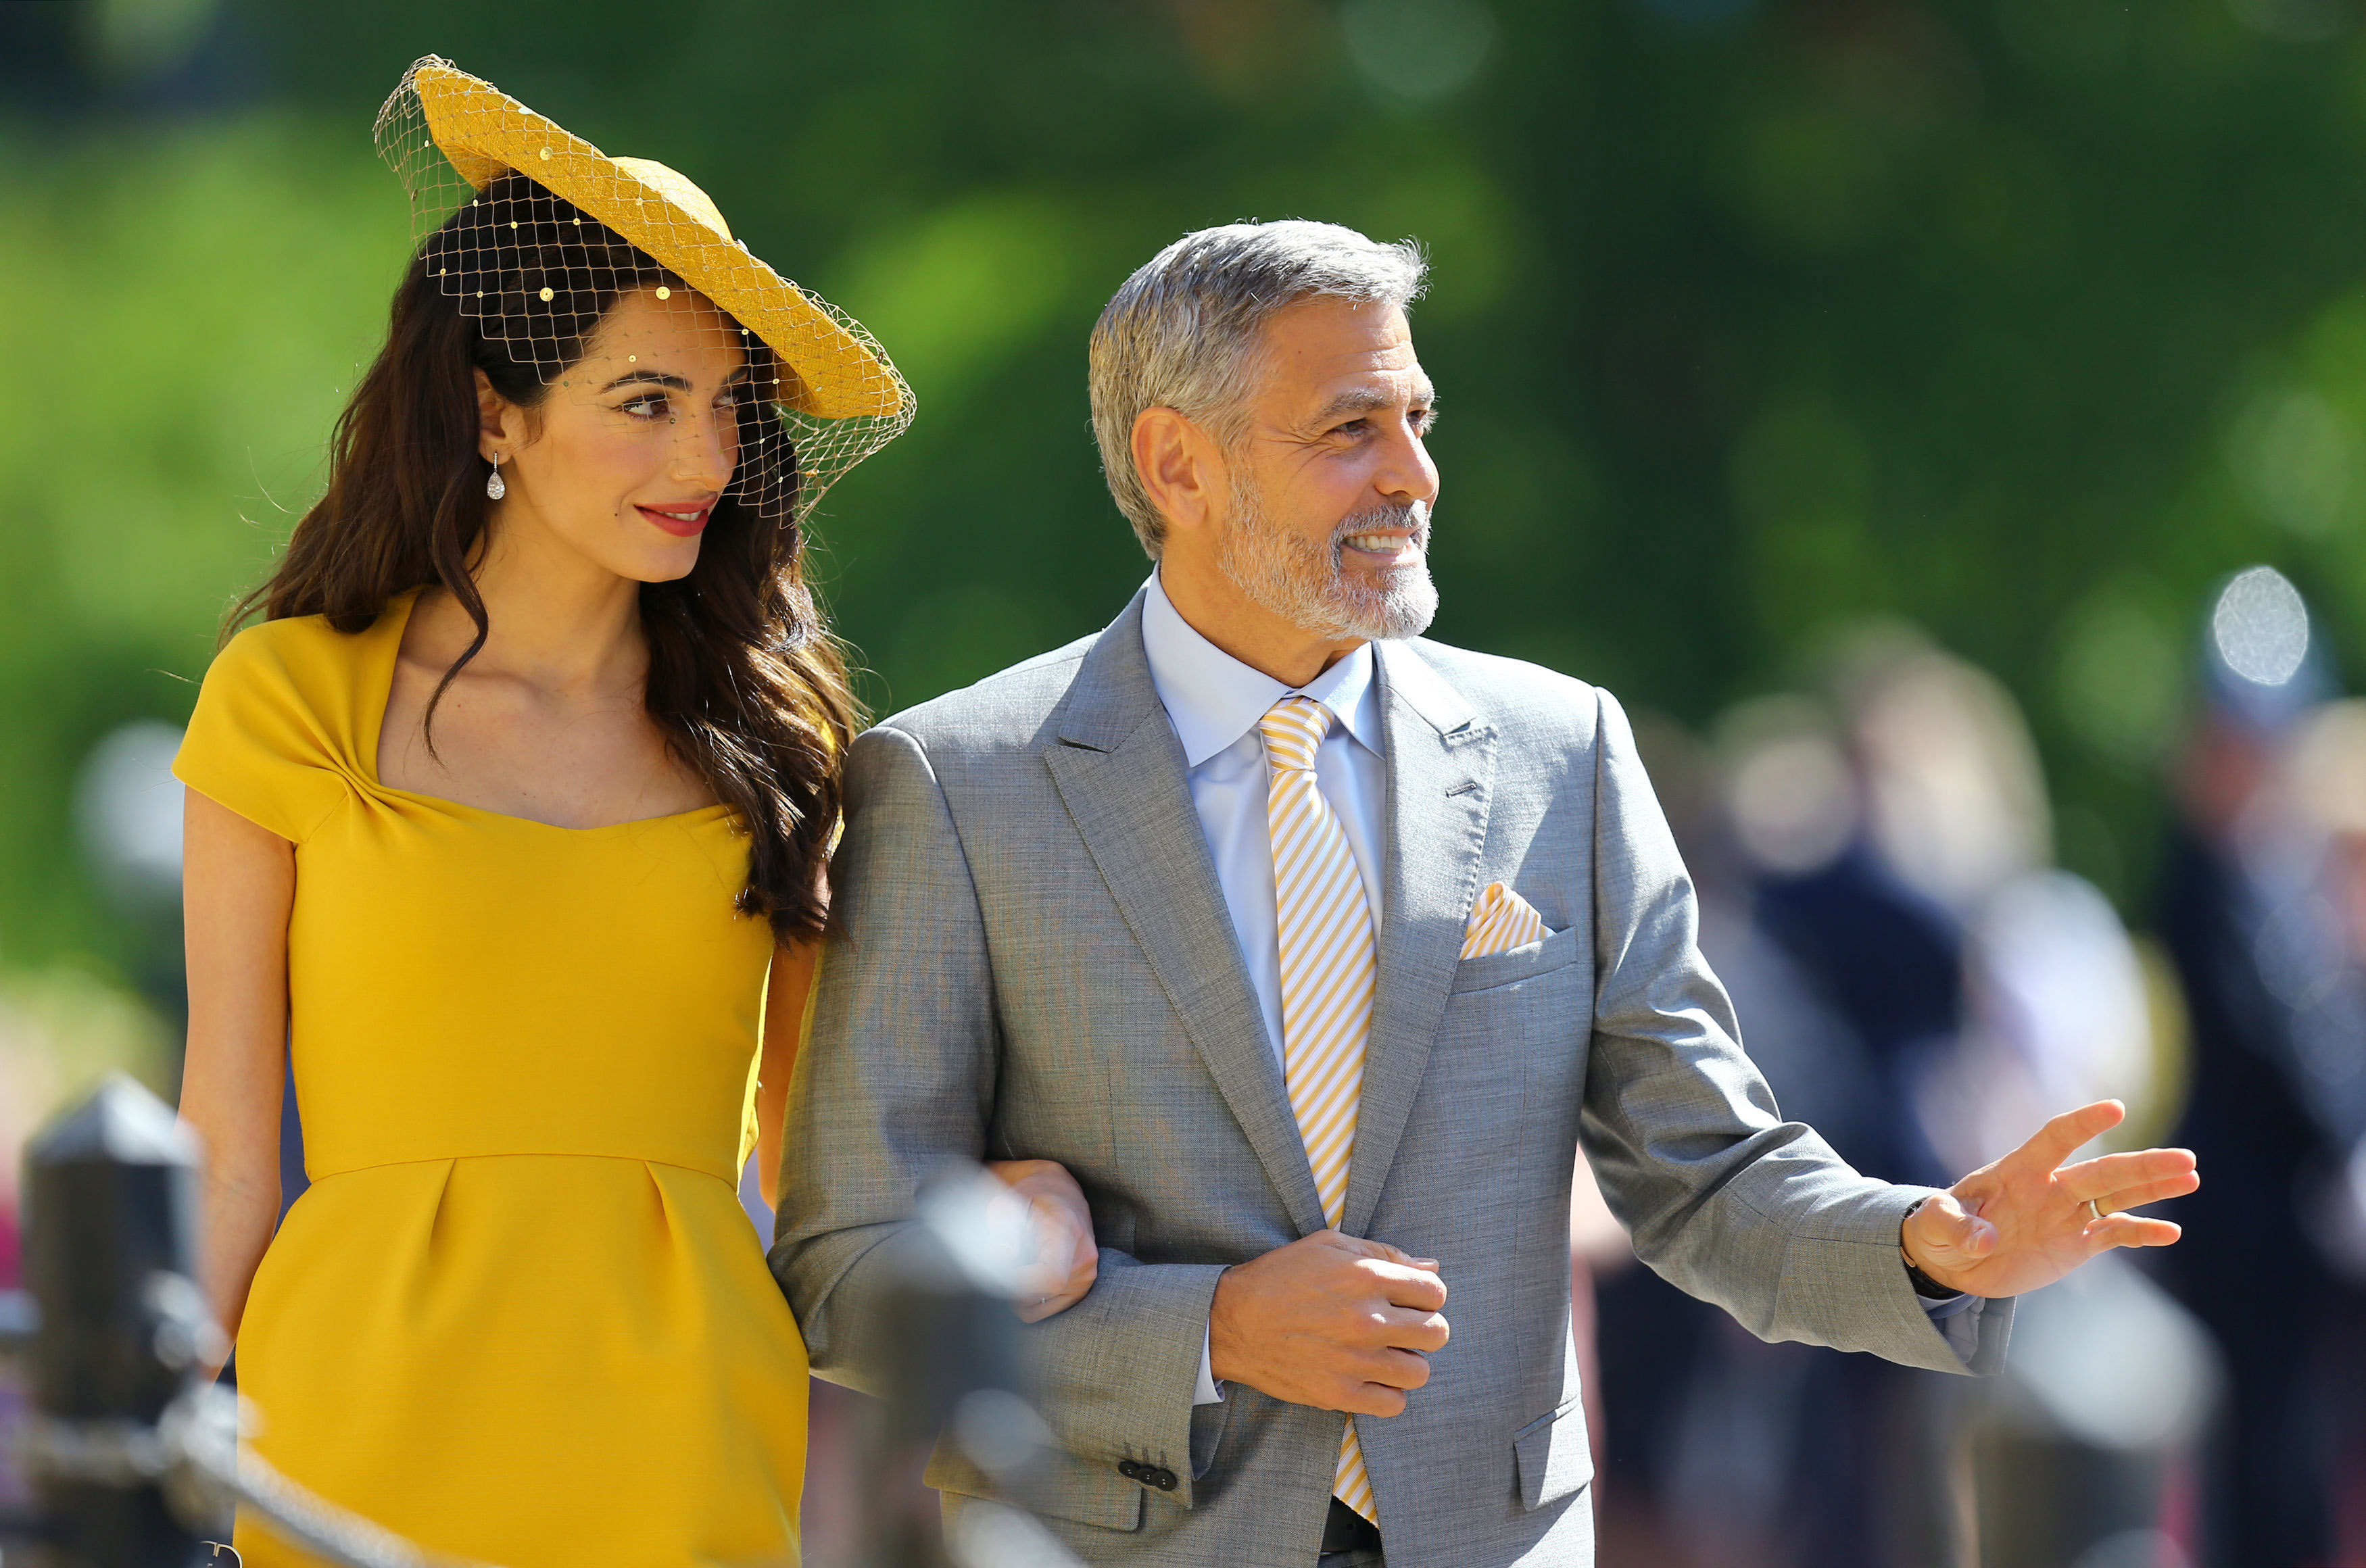 Amal Clooney and George Clooney arrive at St George's Chapel at Windsor Castle before the wedding of Prince Harry to Meghan Markle on May 19, 2018, in Windsor, England. (Getty)